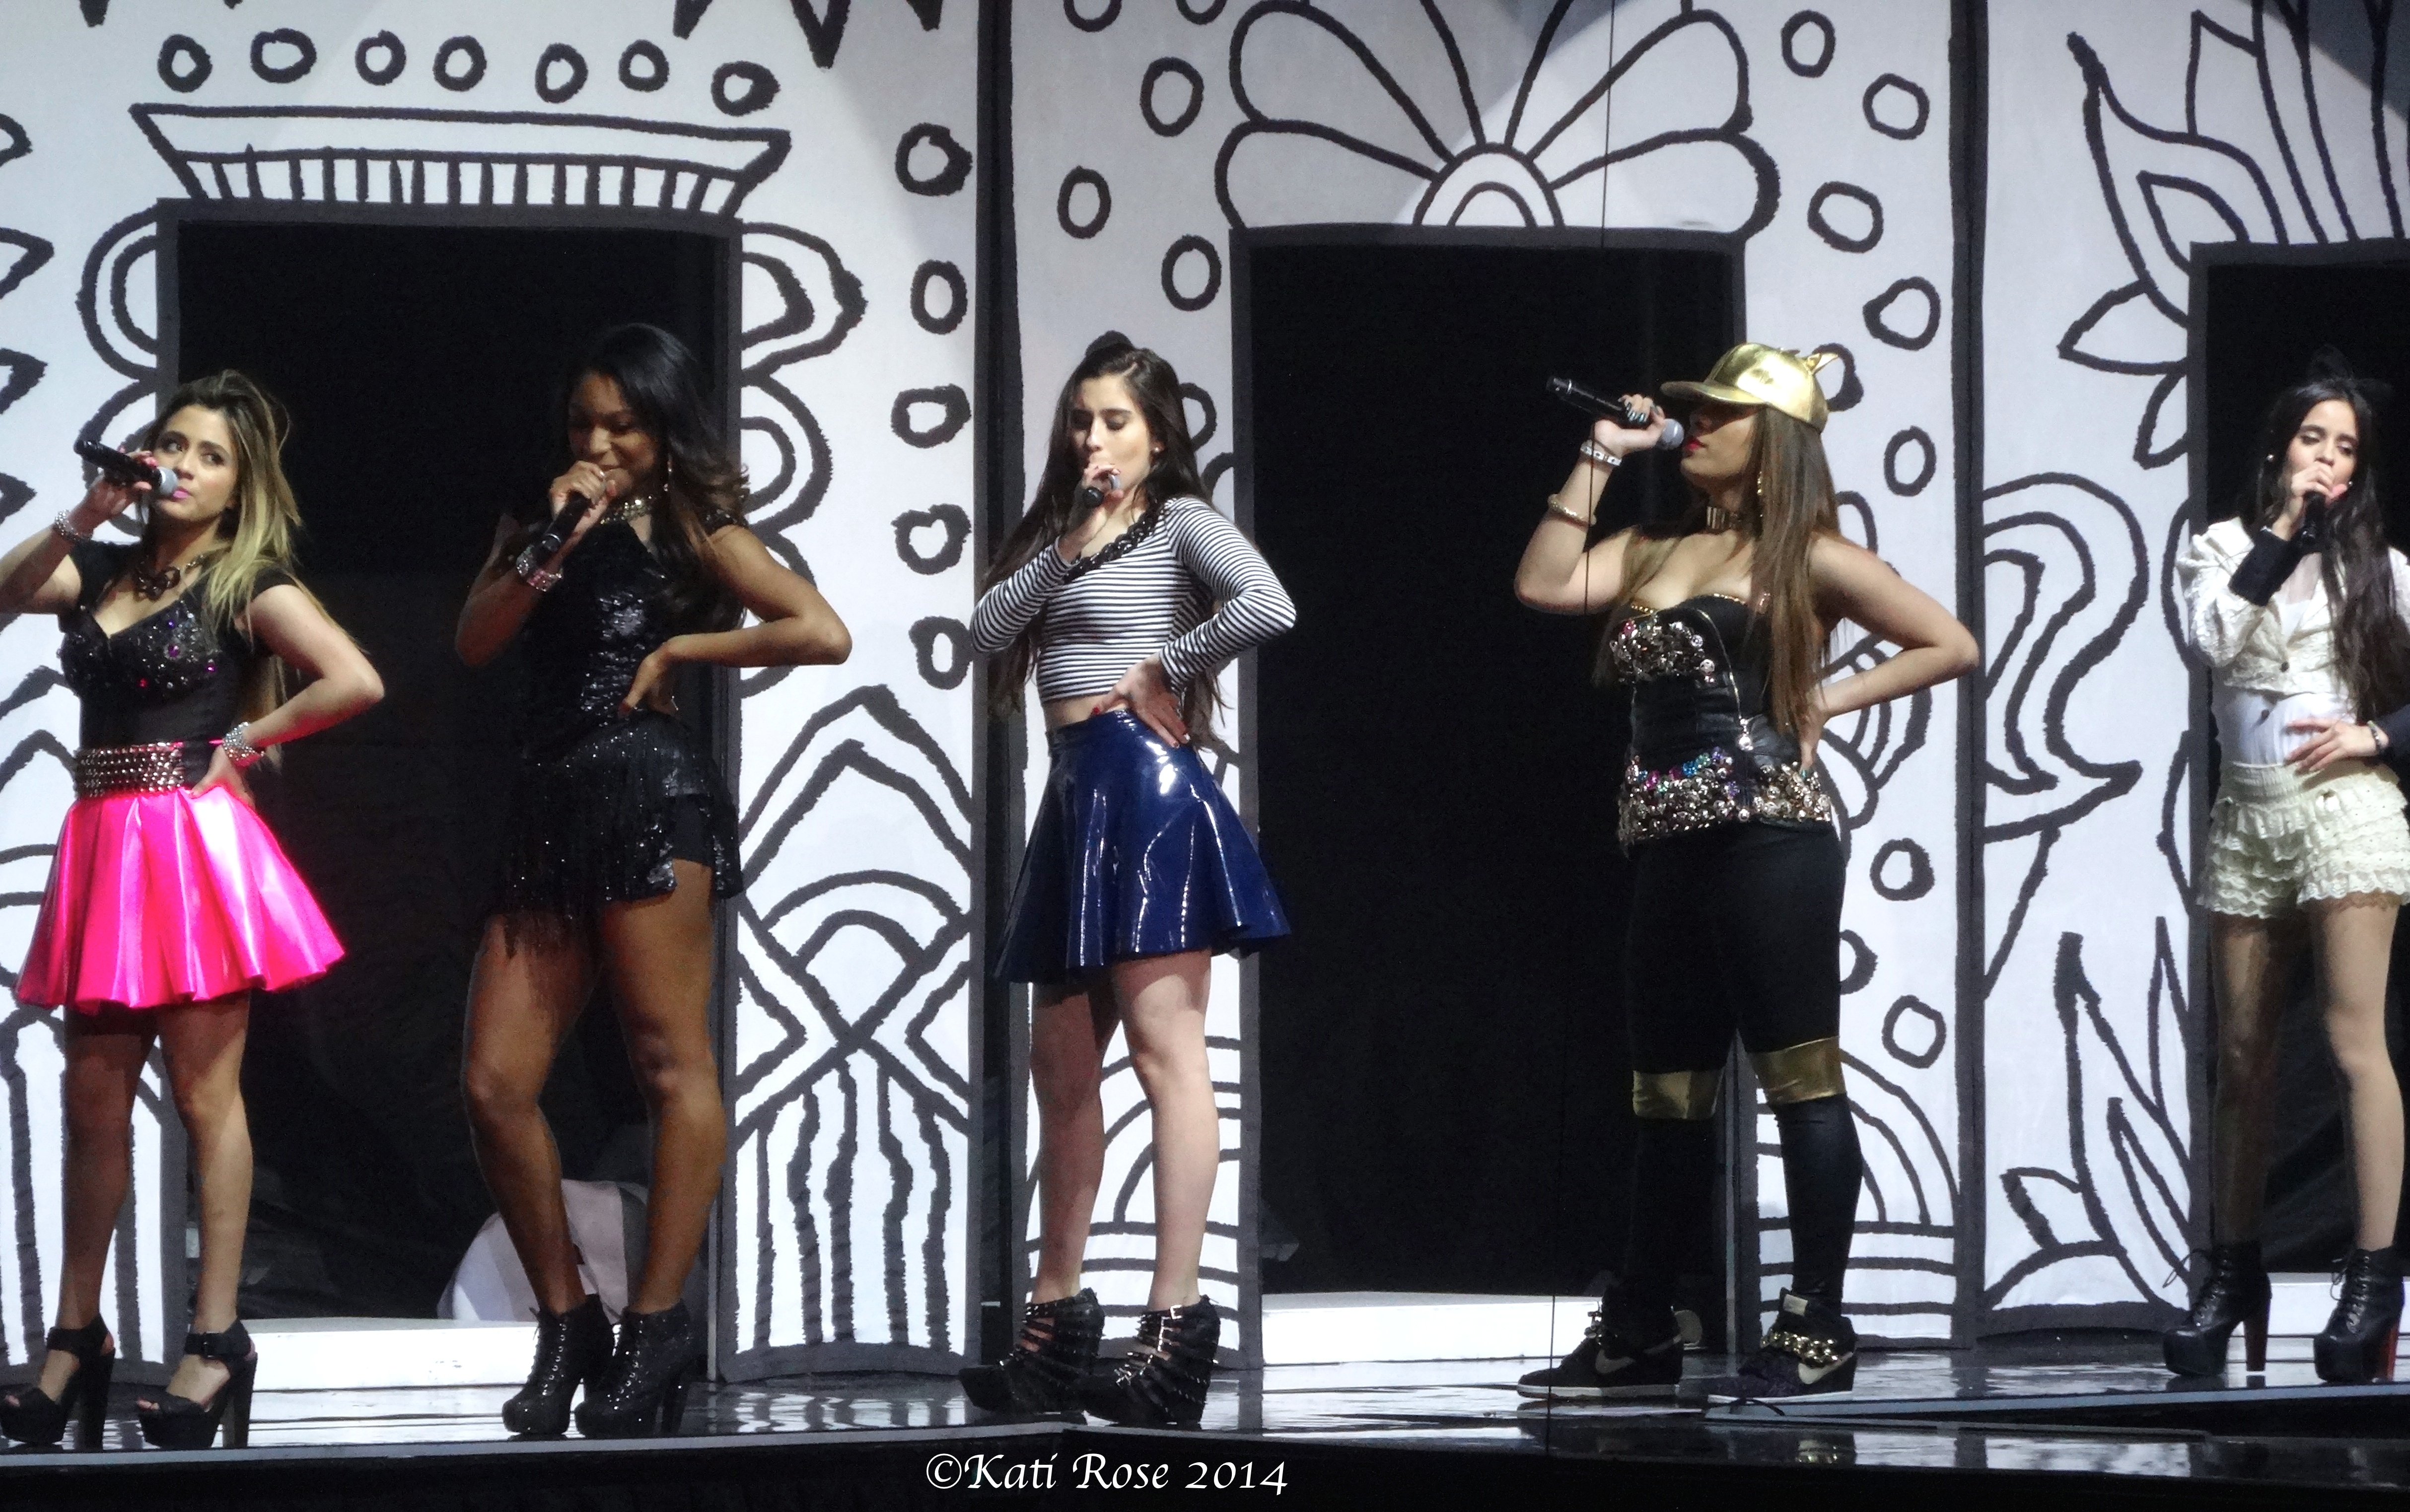 fifth-harmony-concert-photography